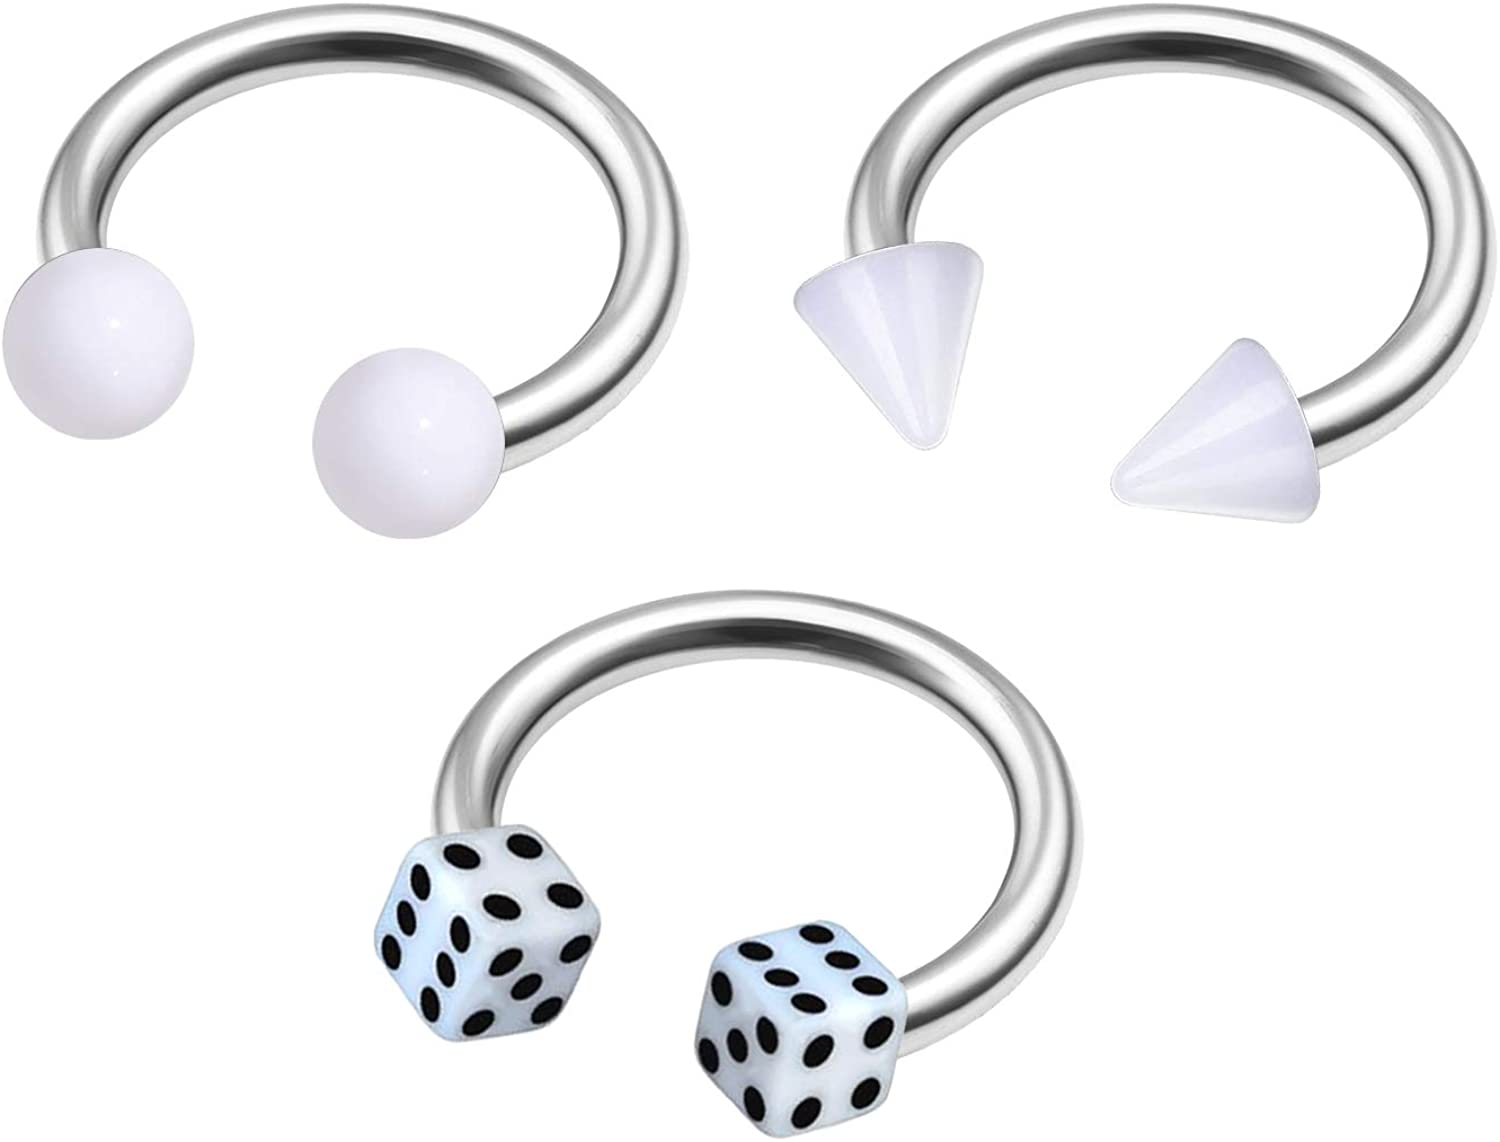 MATIGA 3Pcs Steel 16g 5/16 8mm Septum Horseshoe Ring Piercing Jewelry Tragus Nose Daith Lip 3mm Cone Ball Dice Acrylic More Choices